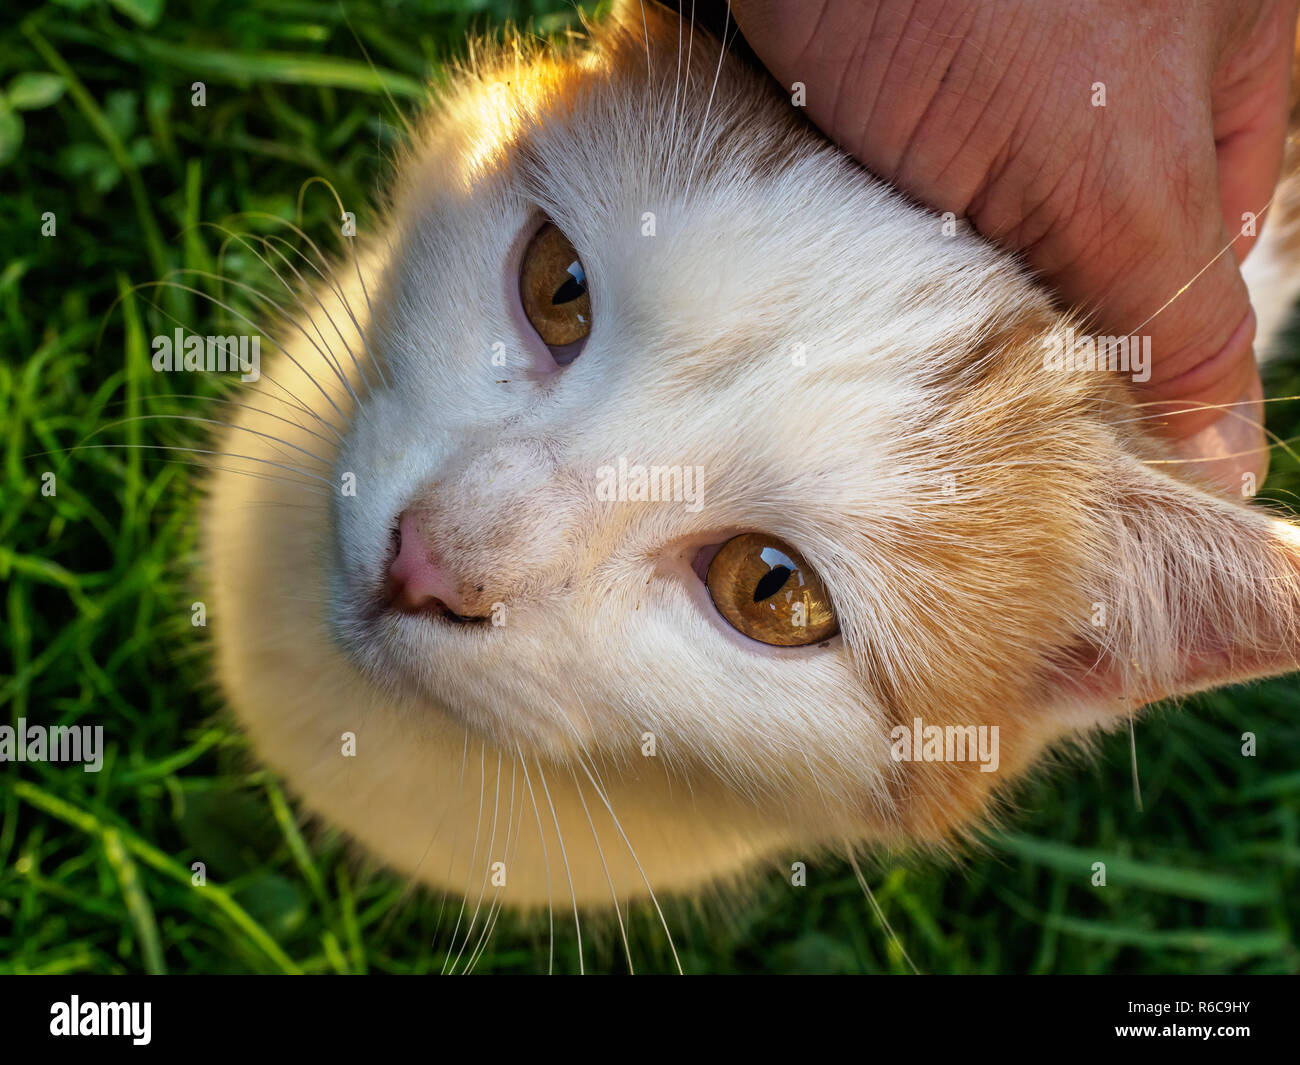 A farm cat enjoys being petted on the head Stock Photo